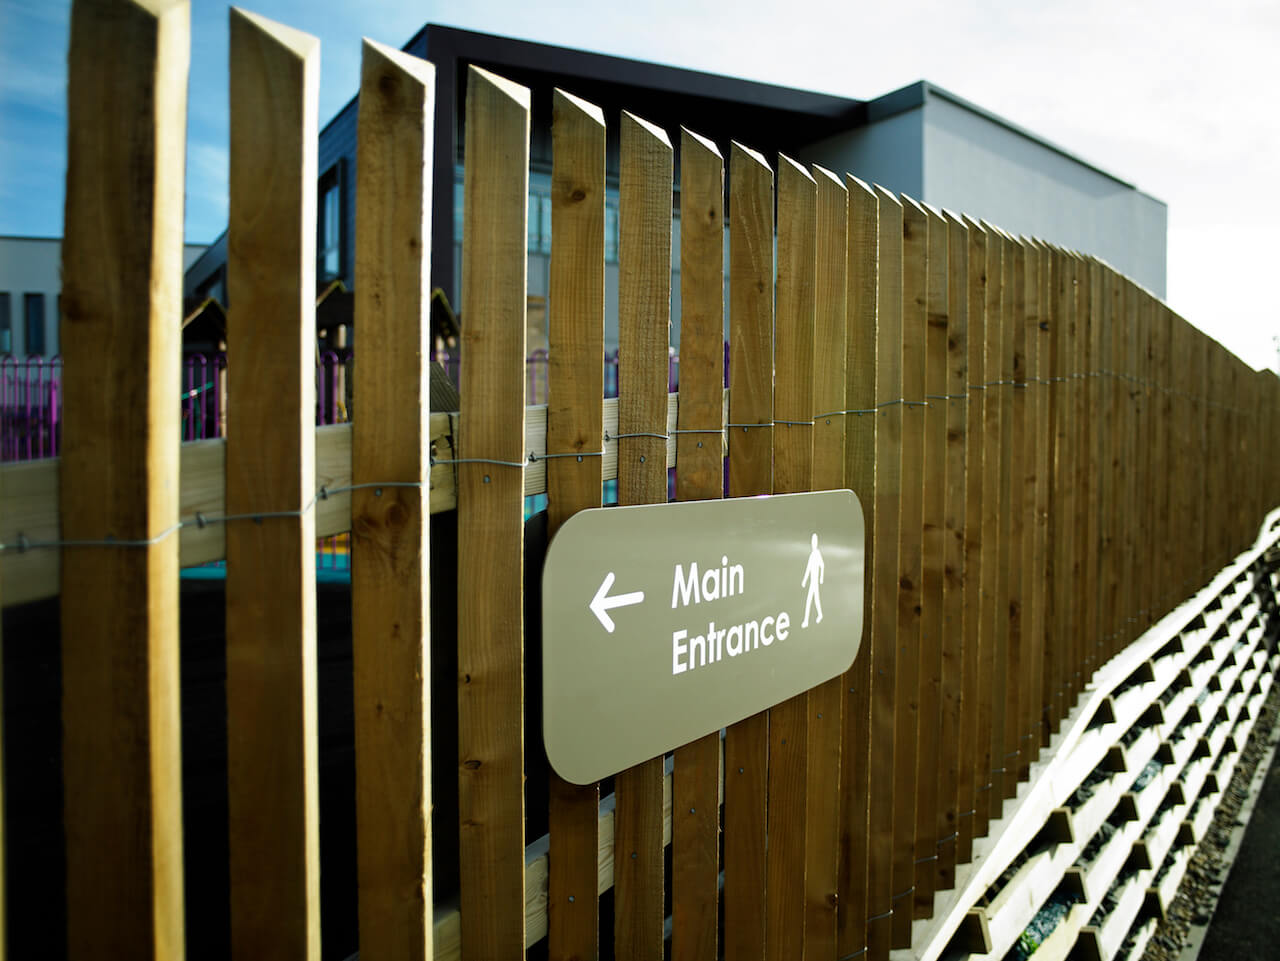 Directional signage at Knop Law Primary School